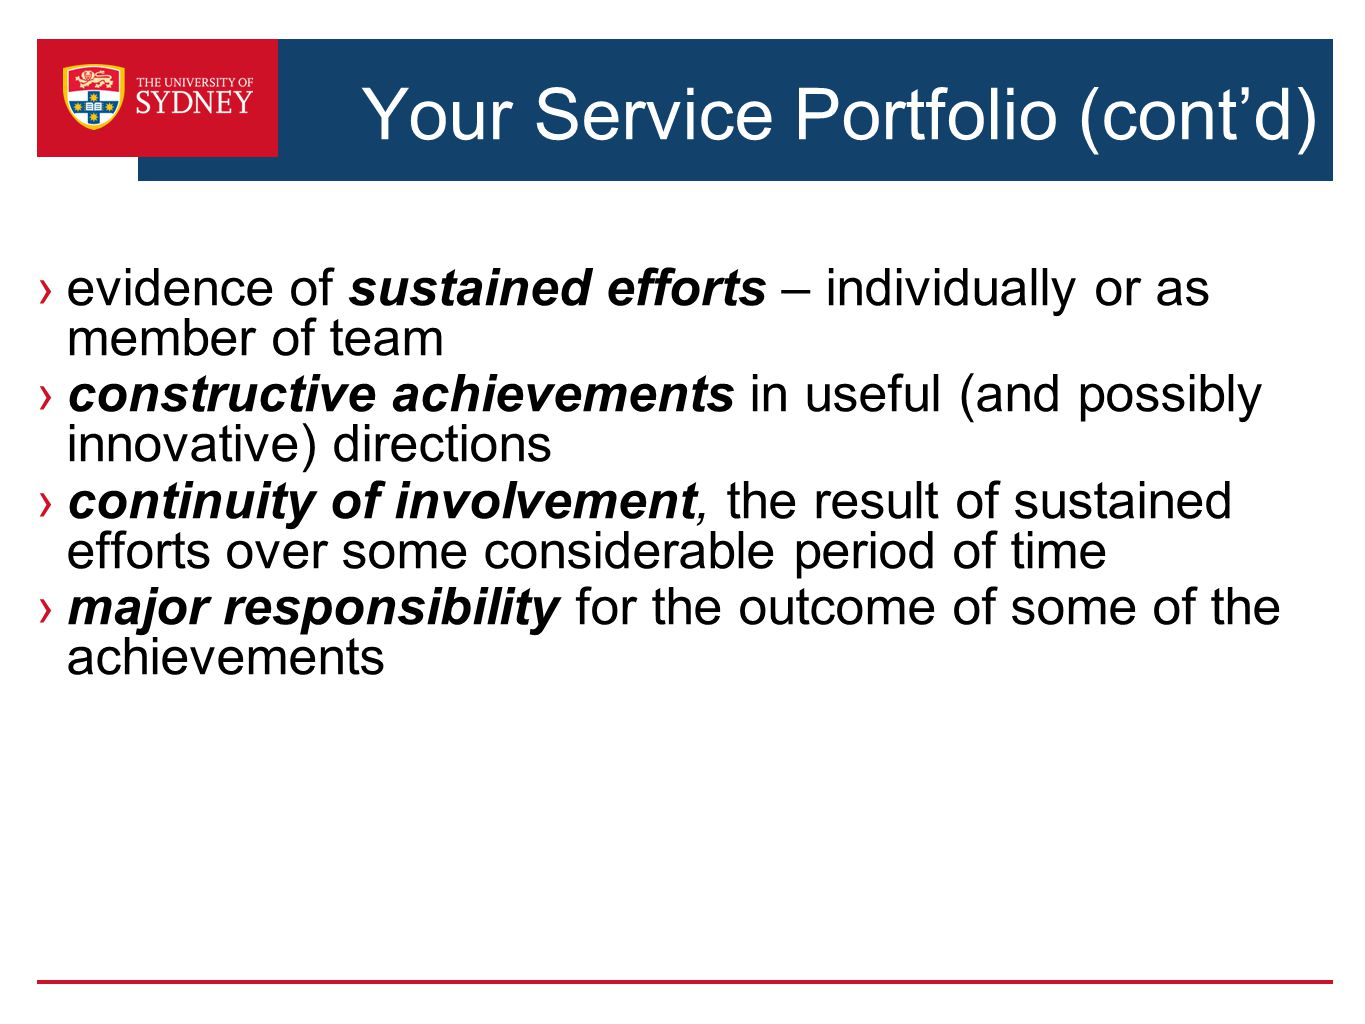 Your Service Portfolio (cont'd) ›evidence of sustained efforts – individually or as member of team ›constructive achievements in useful (and possibly innovative) directions ›continuity of involvement, the result of sustained efforts over some considerable period of time ›major responsibility for the outcome of some of the achievements